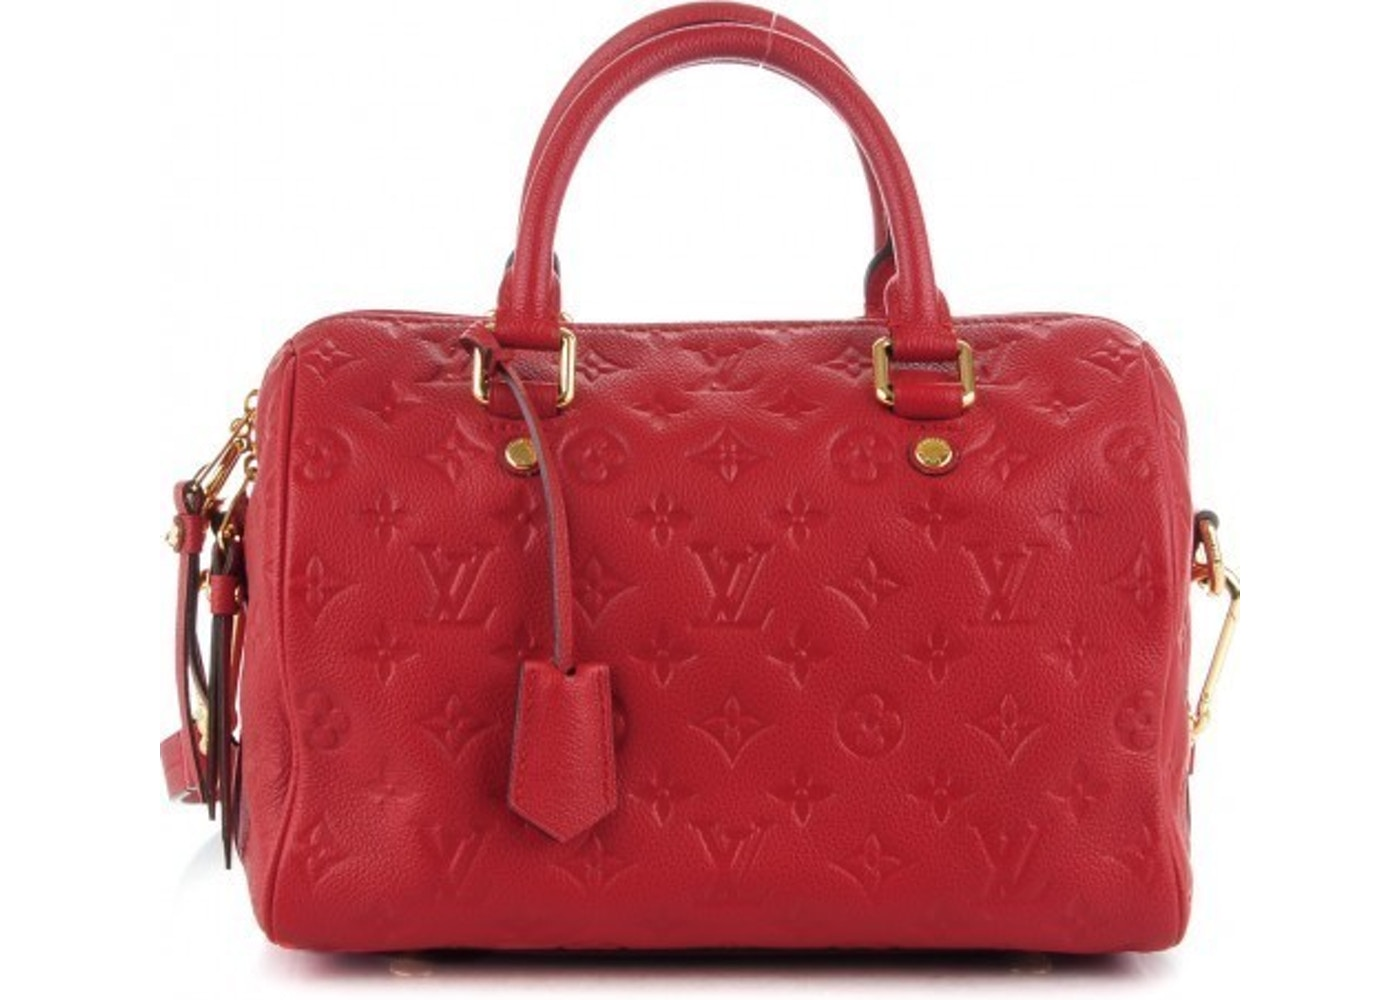 b5b7eb337b4b2c Sell. or Ask. View All Bids. Louis Vuitton Speedy Bandouliere Monogram  Empreinte 25 Cerise Cherry